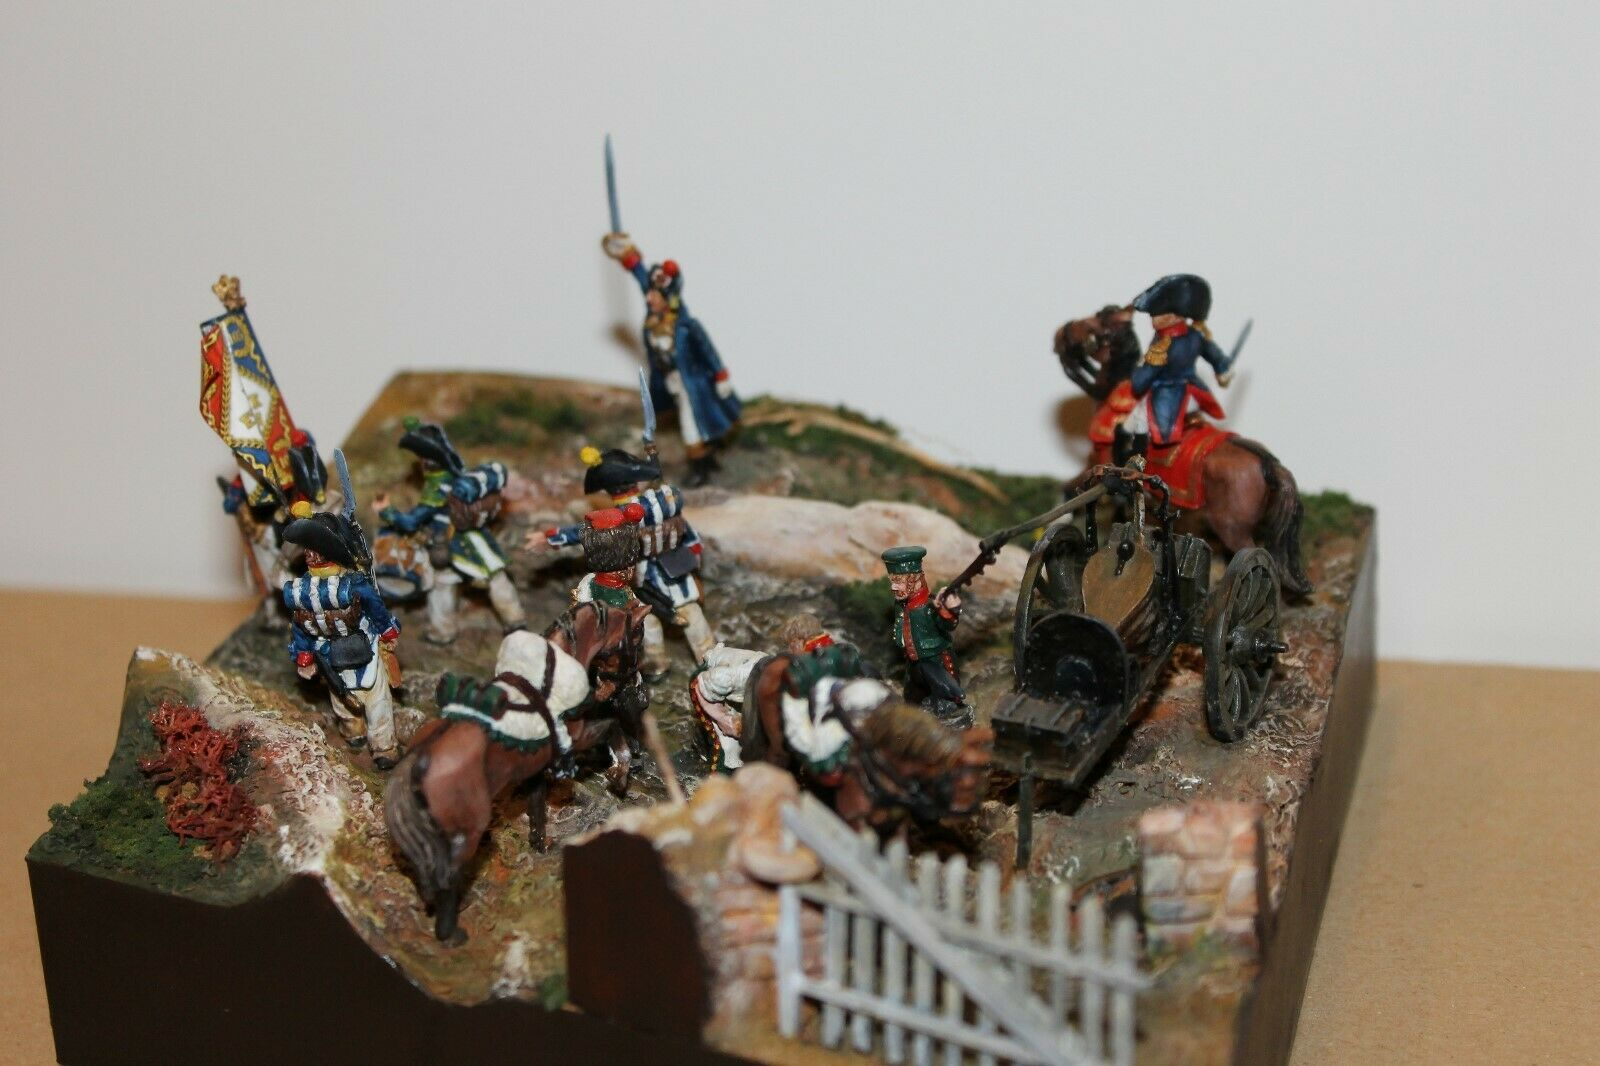 Diorama Figurines Perry miniature 28mm 1ier Empire Voltigeurs Forge de campagne